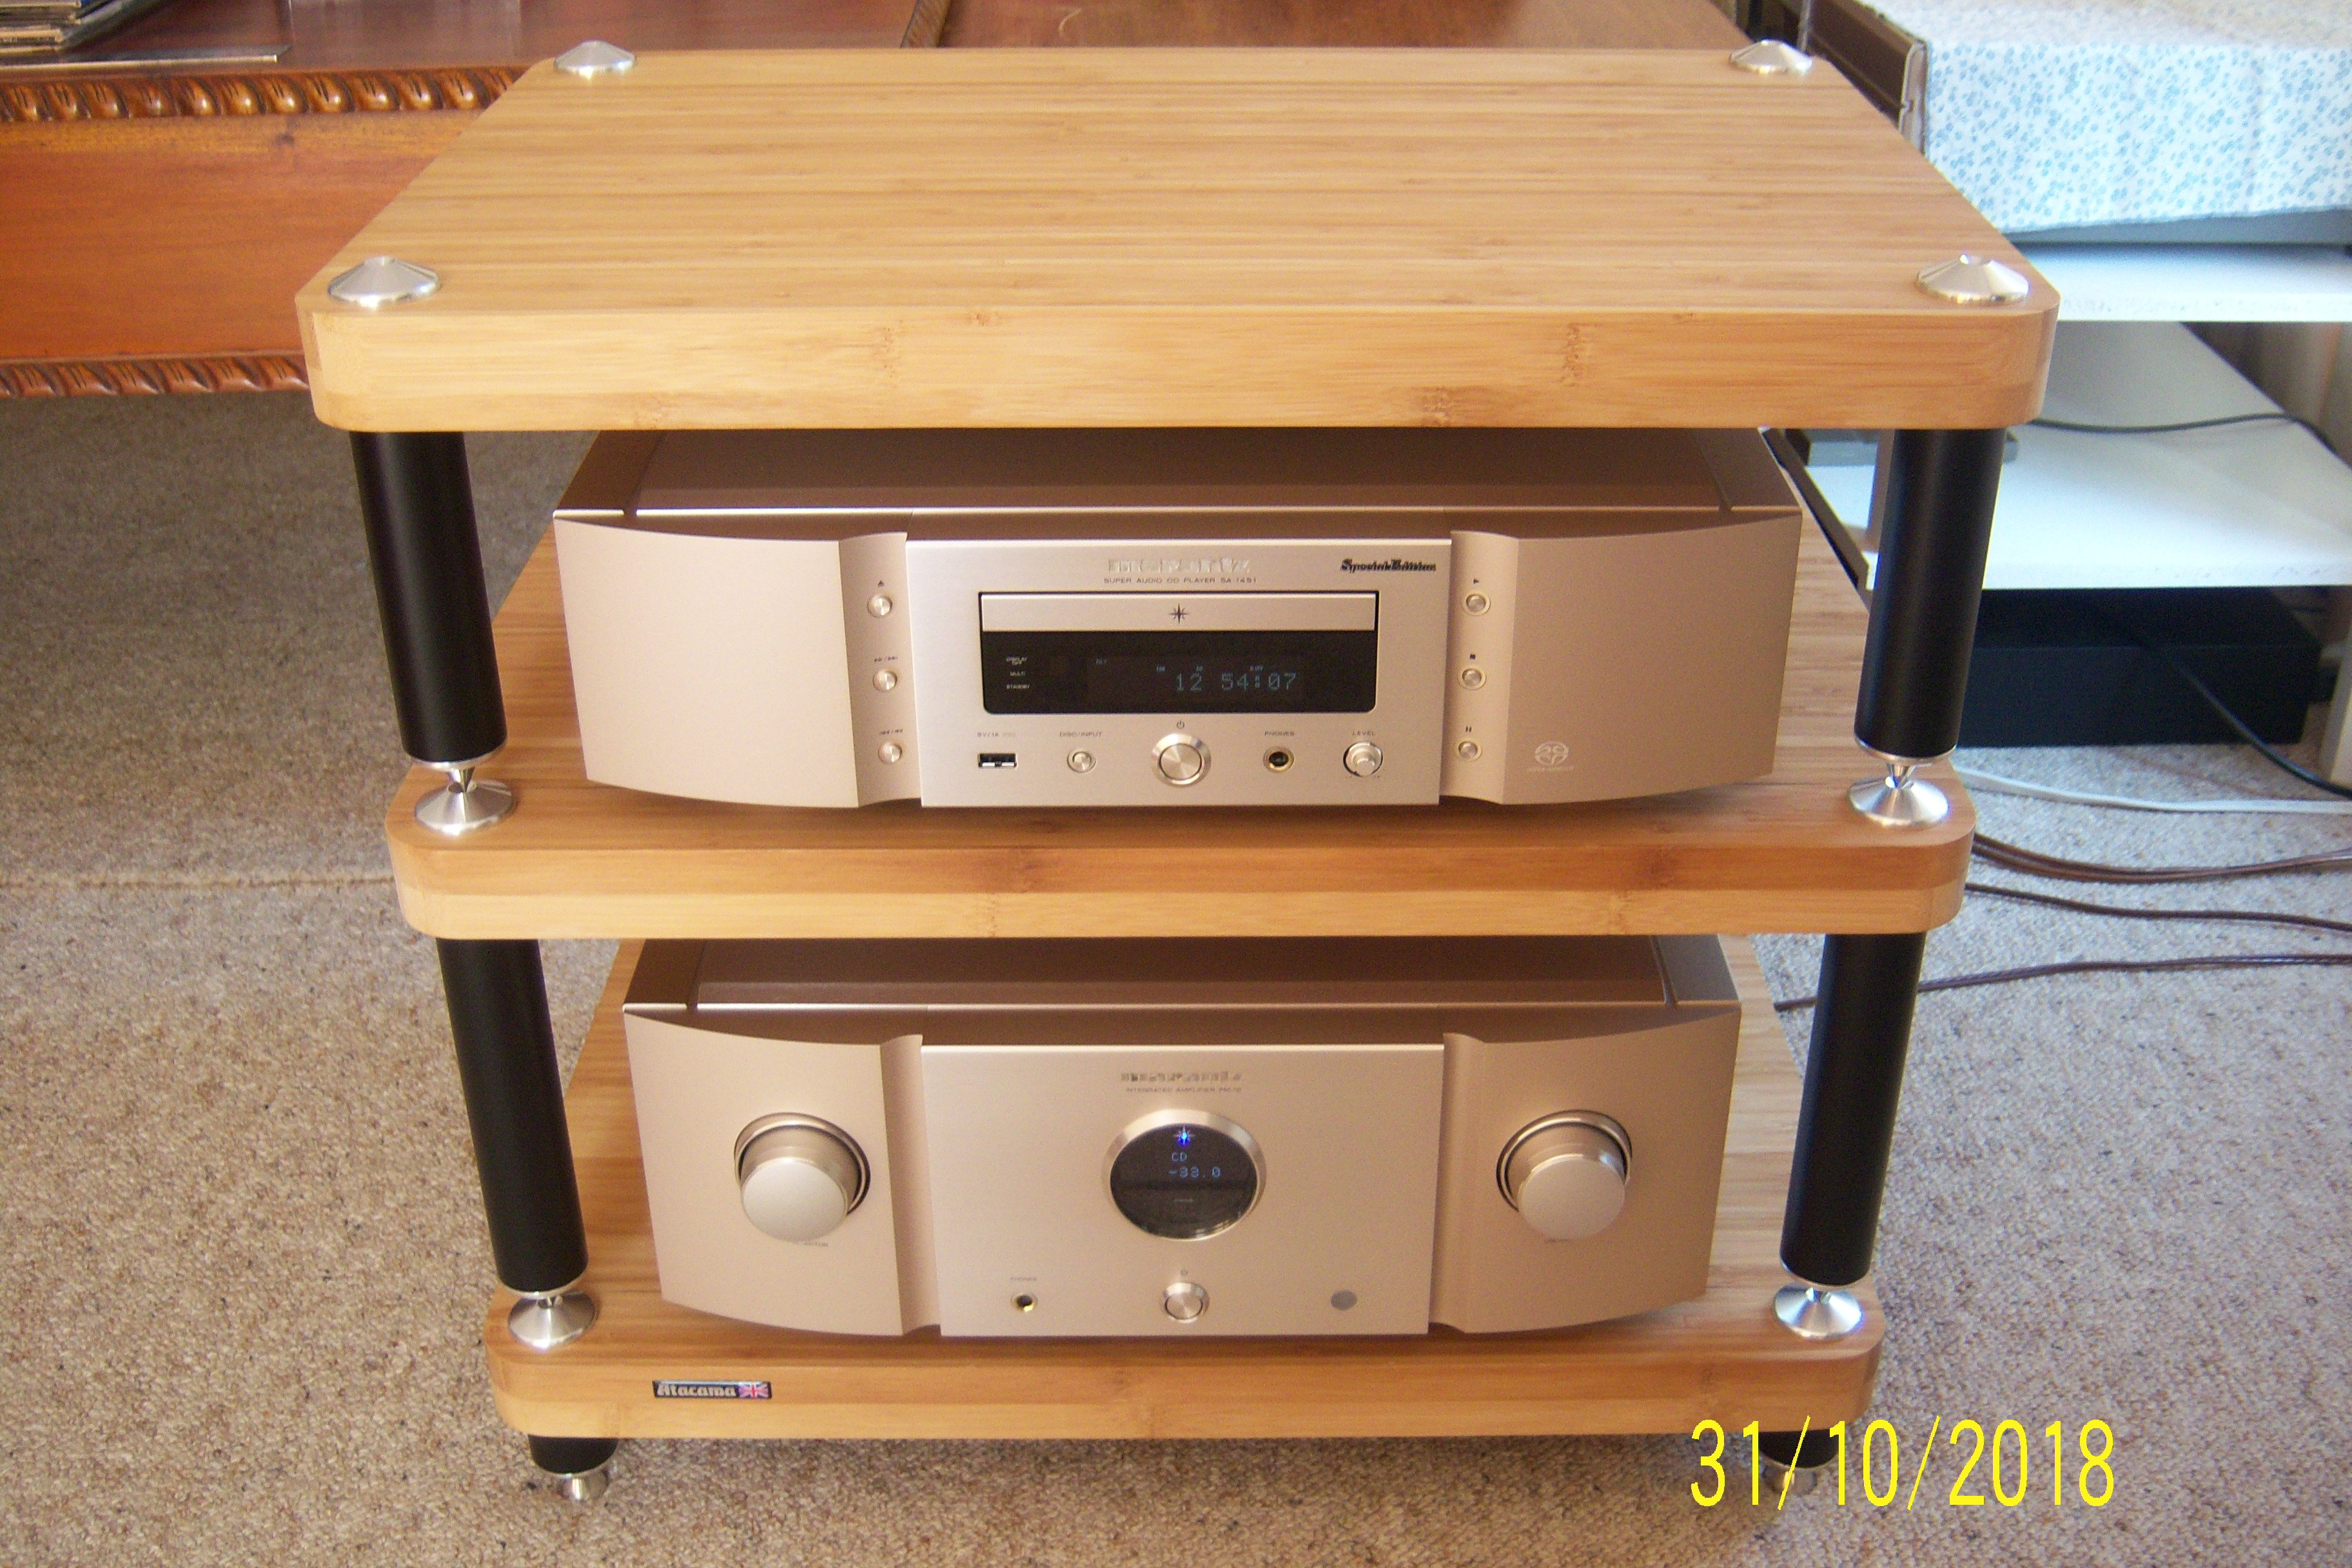 Atacama Hifi Rack Review Sold Hi Fi Rack Atacama Evoque Eco 60 40 Special Edition